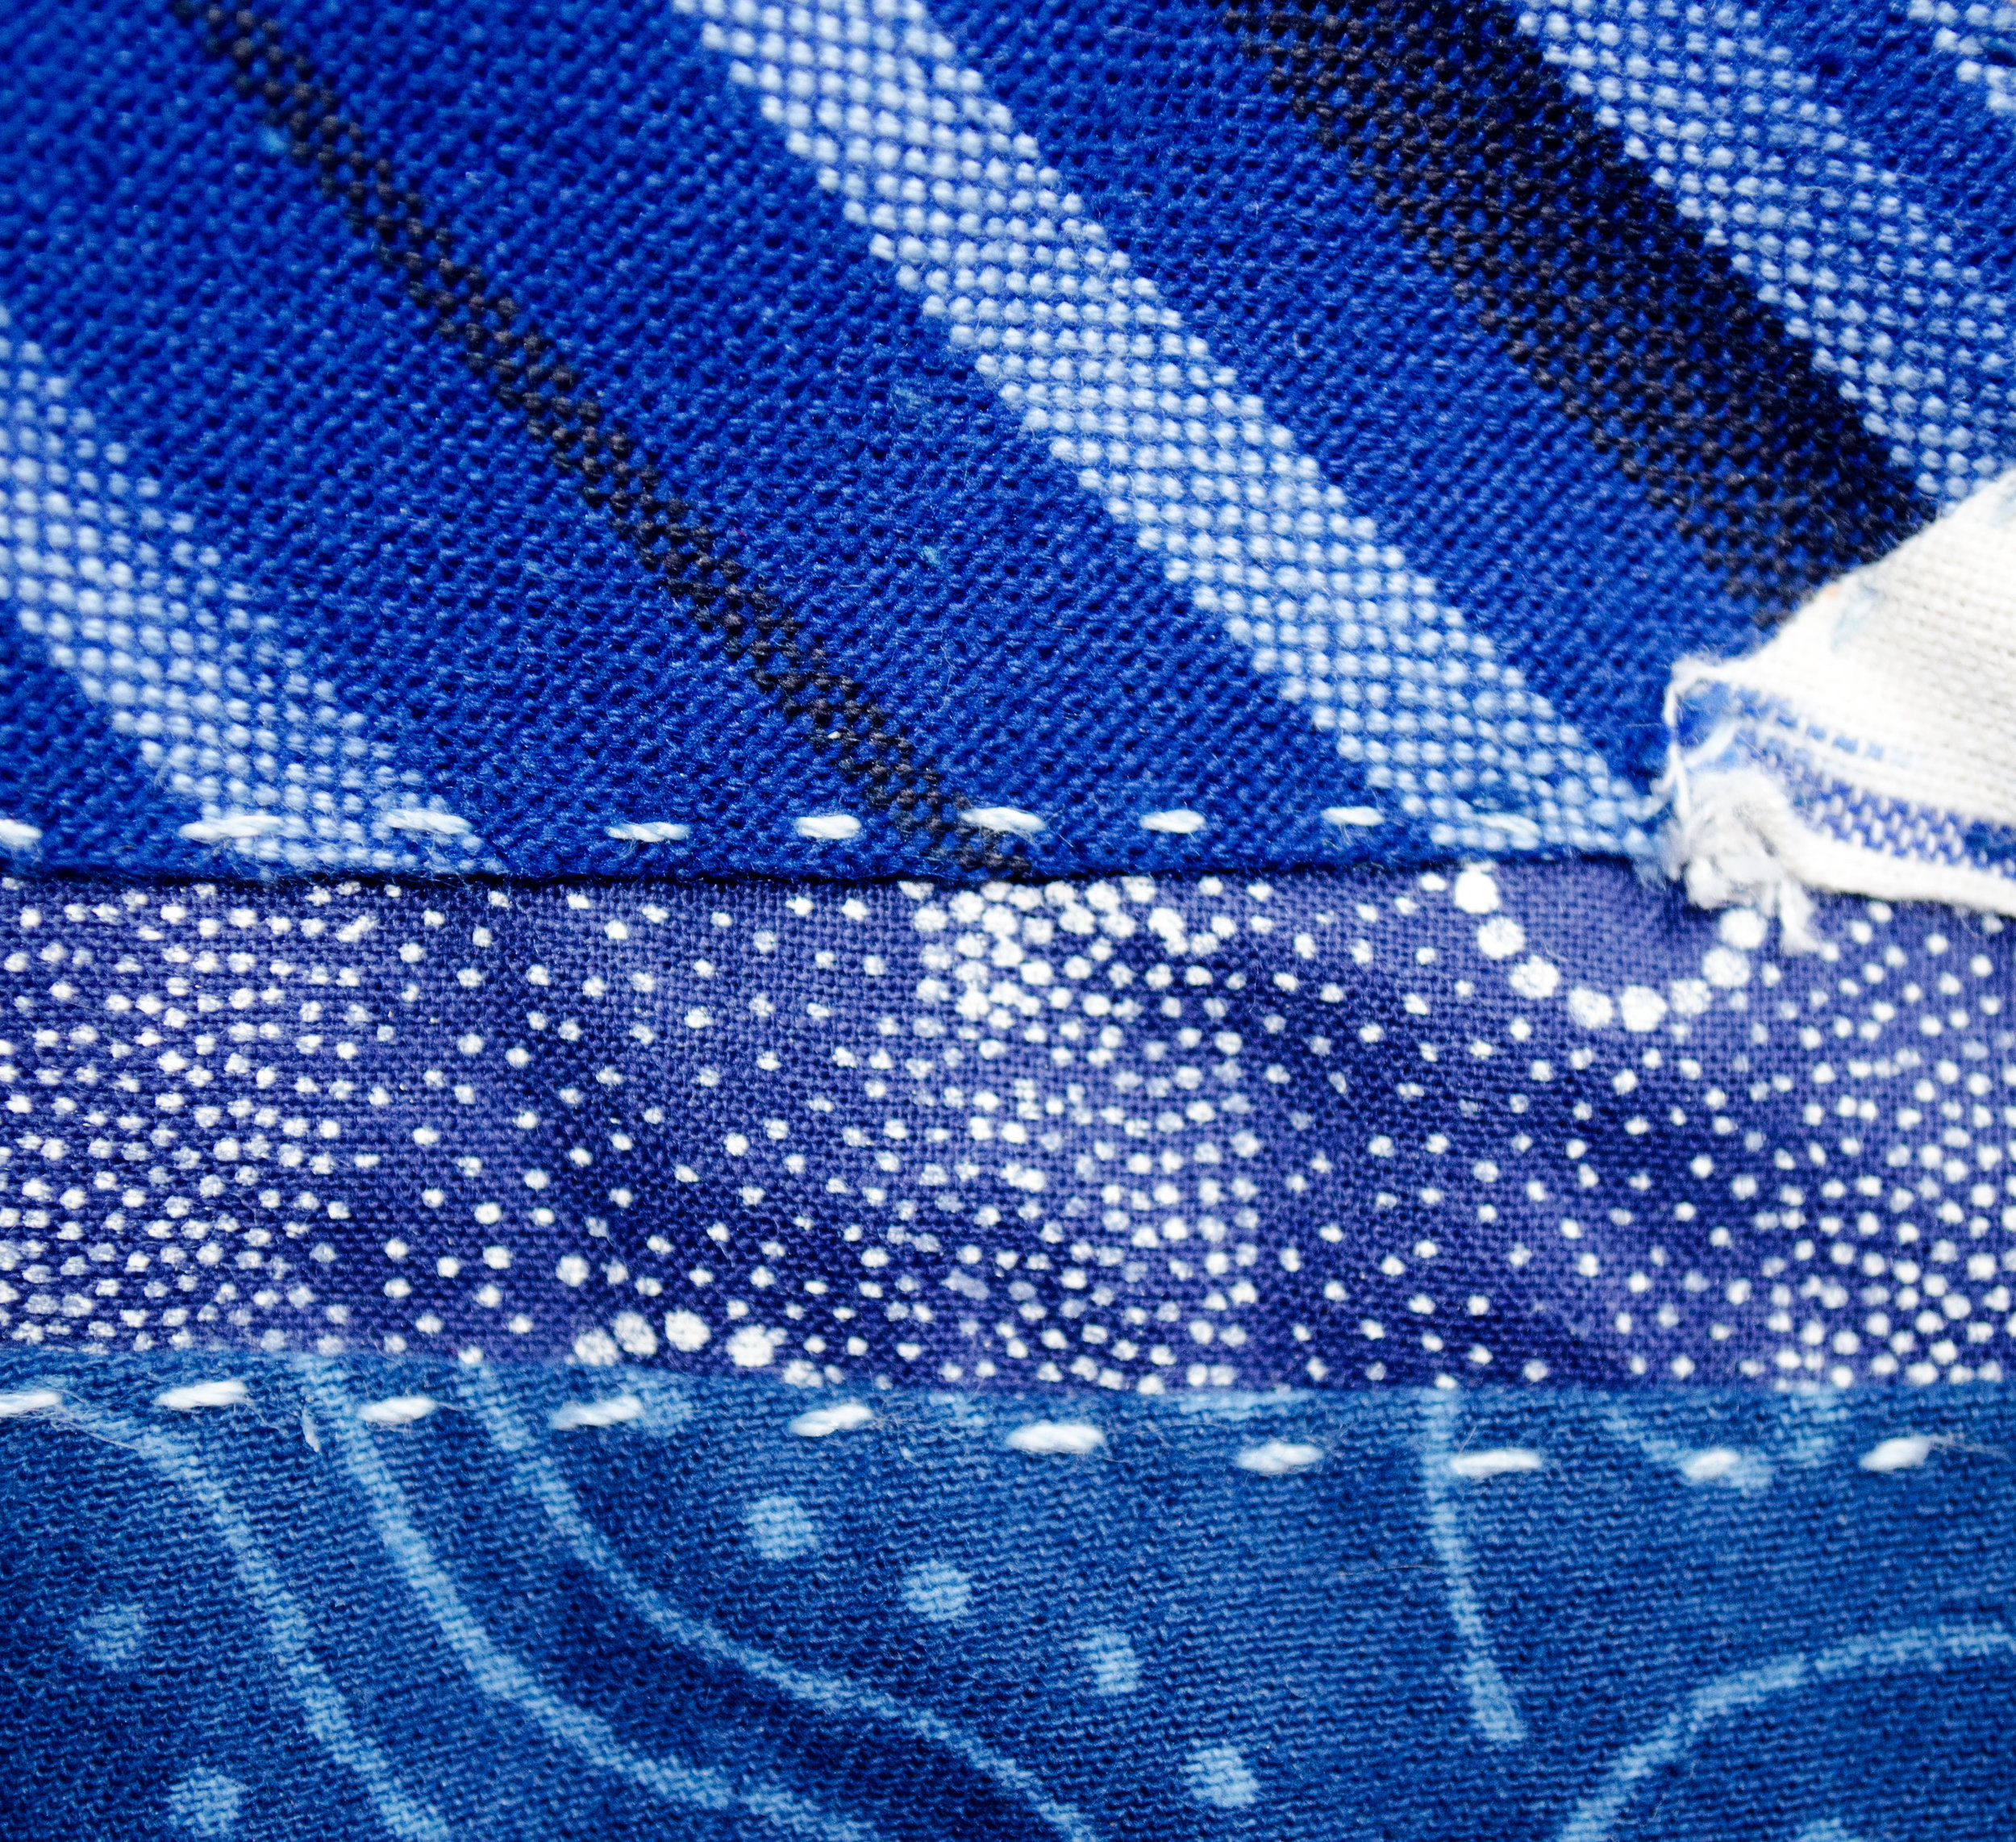 stitched cotton block prints and woven stripes